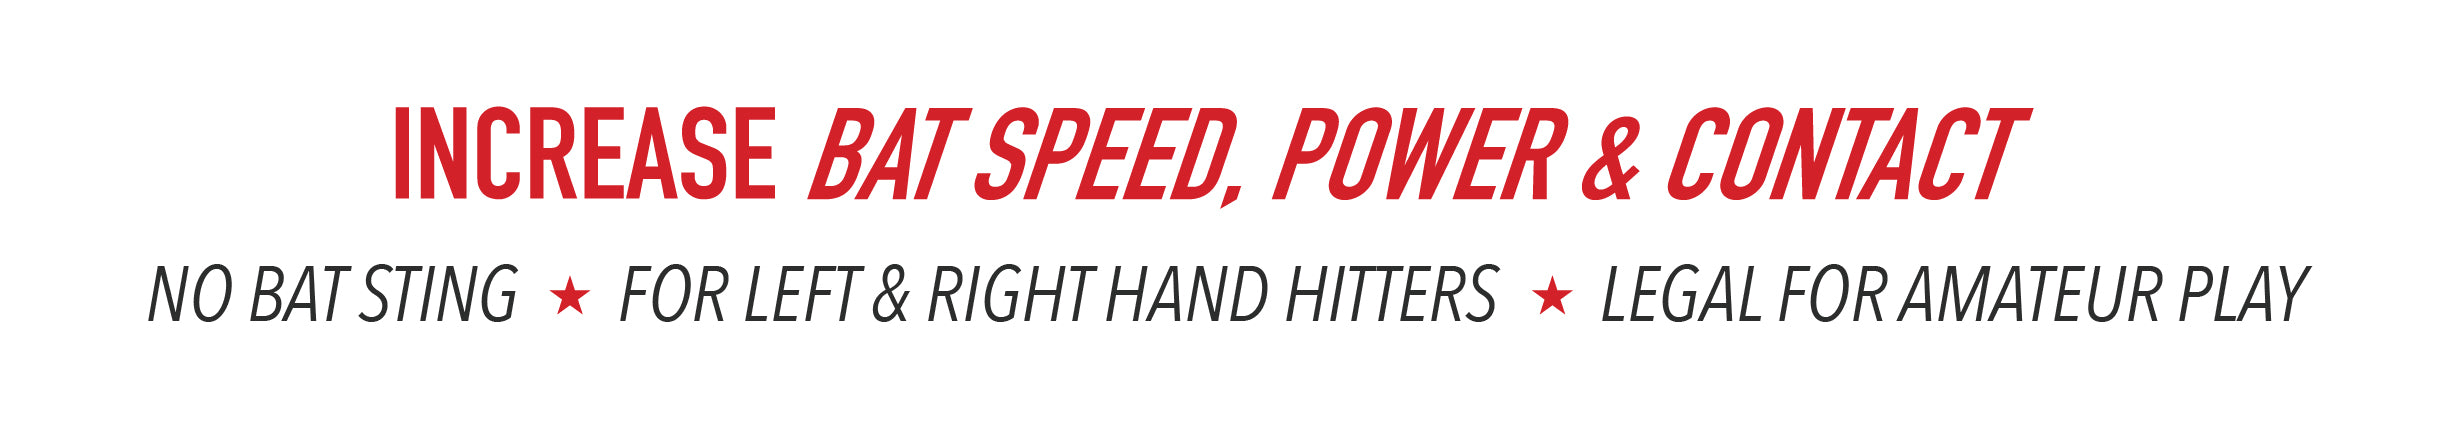 Increase bat speed, power and contact. No bat sting. For left and right hitters. Legal for amateur play.